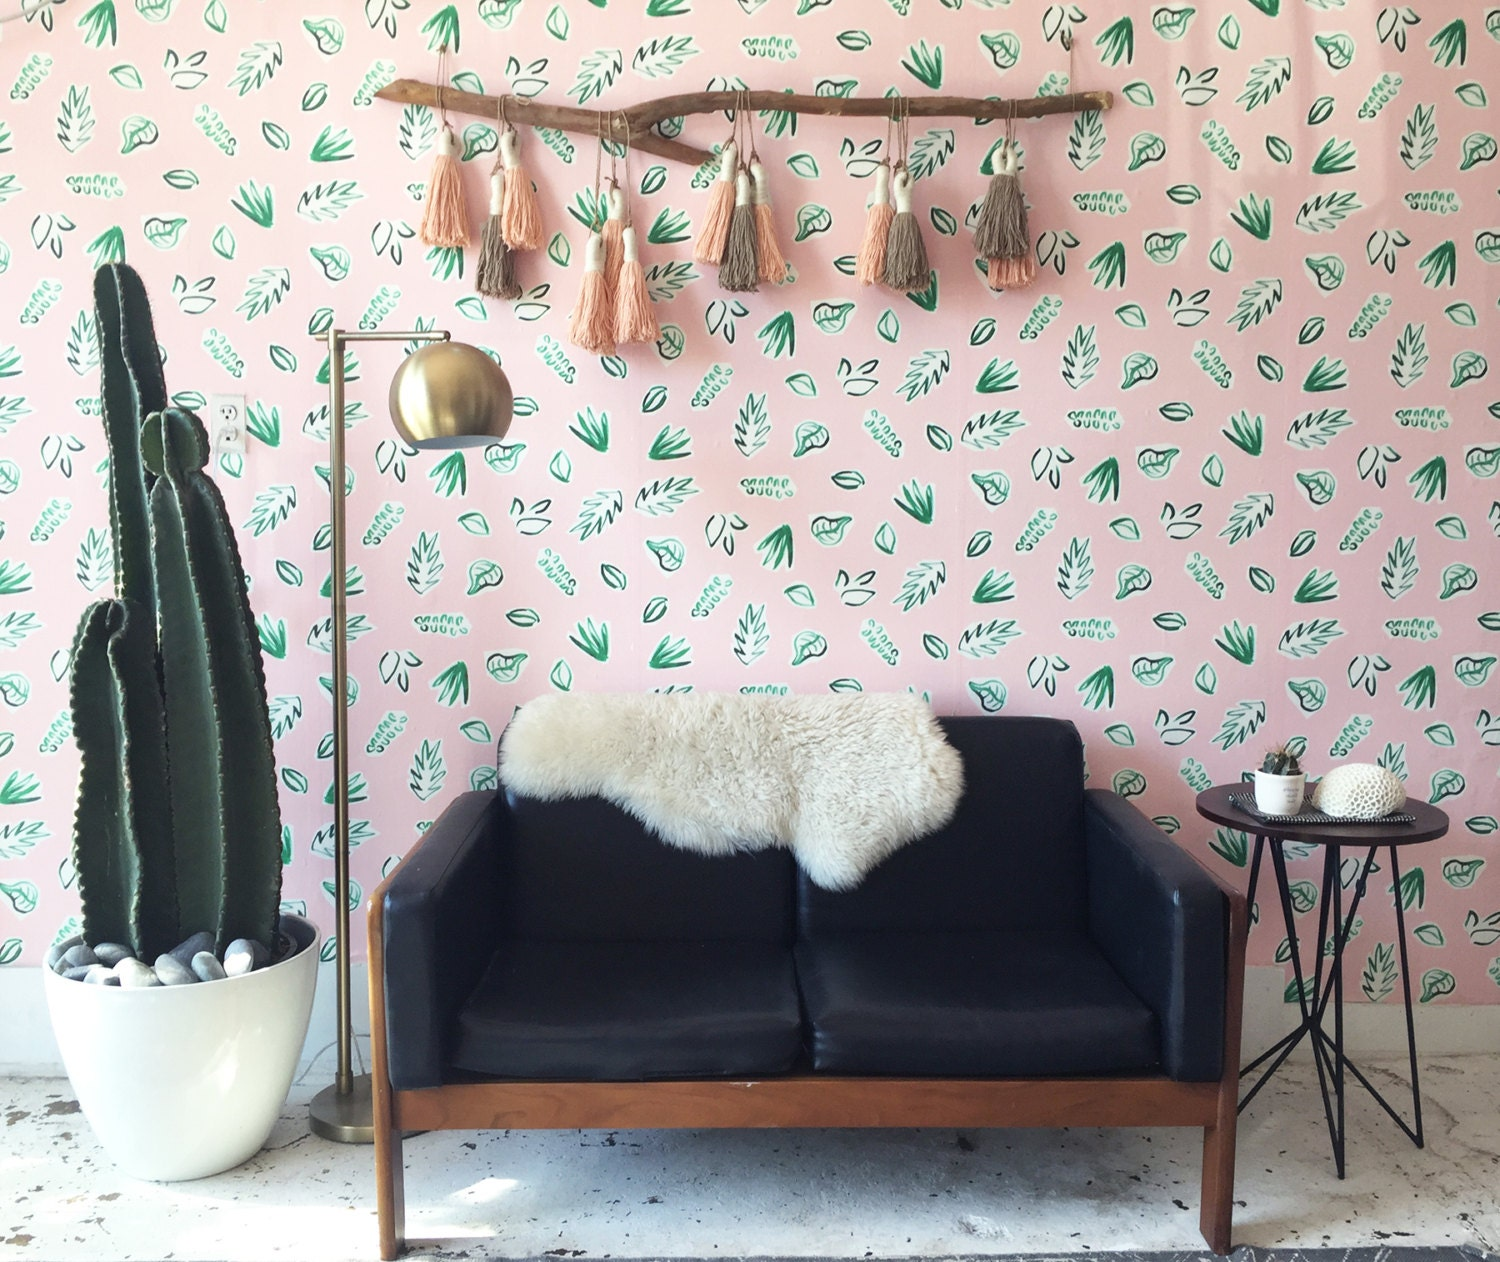 Wallpaper For Renters: Removable Wallpaper // Plants On Pink // Perfect For Renters